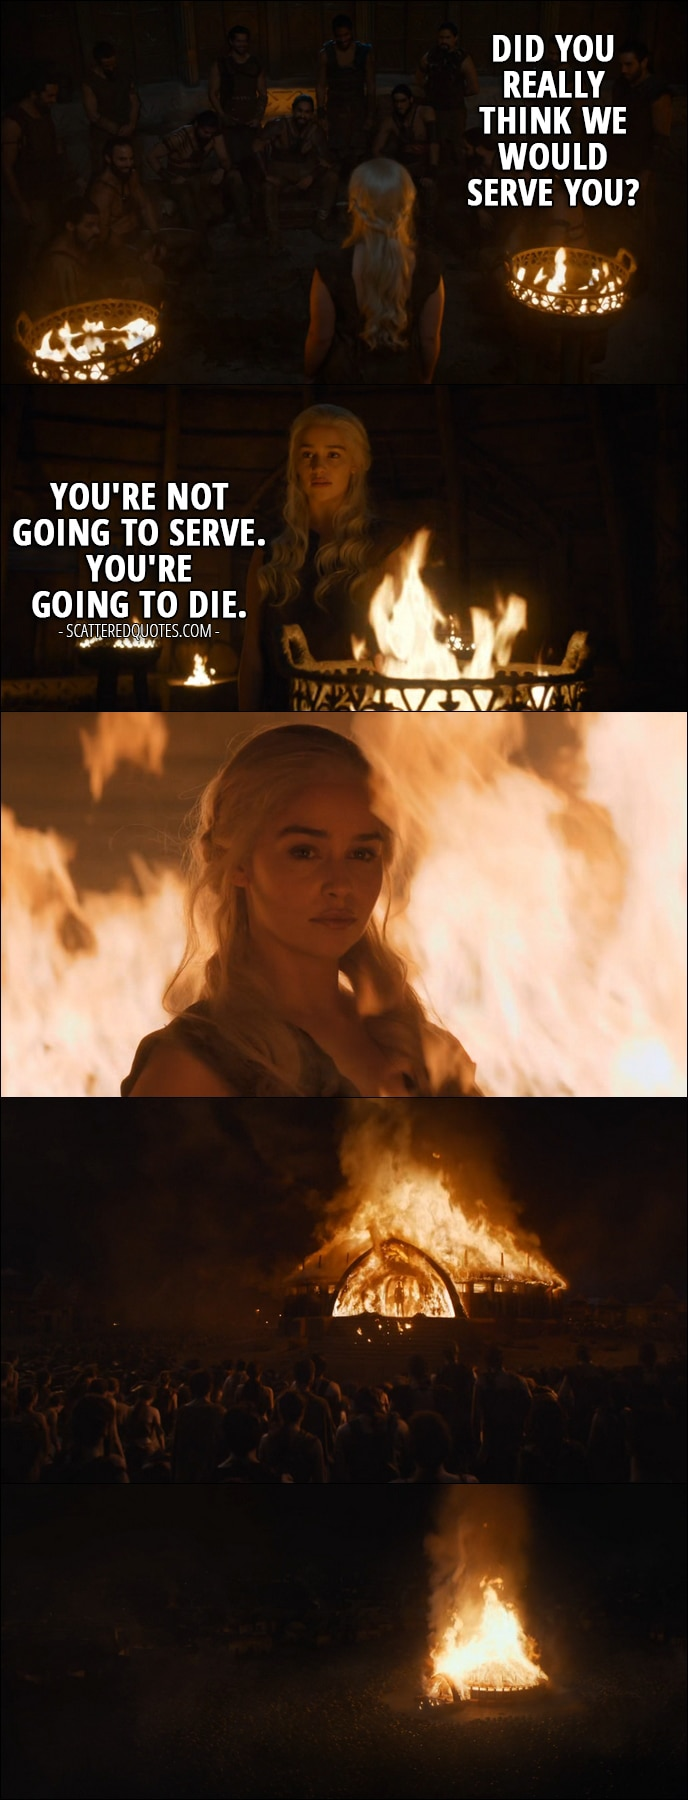 Quote from Game of Thrones 6x04 - Khal Moro: Did you really think we would serve you? Daenerys Targaryen: You're not going to serve. You're going to die.